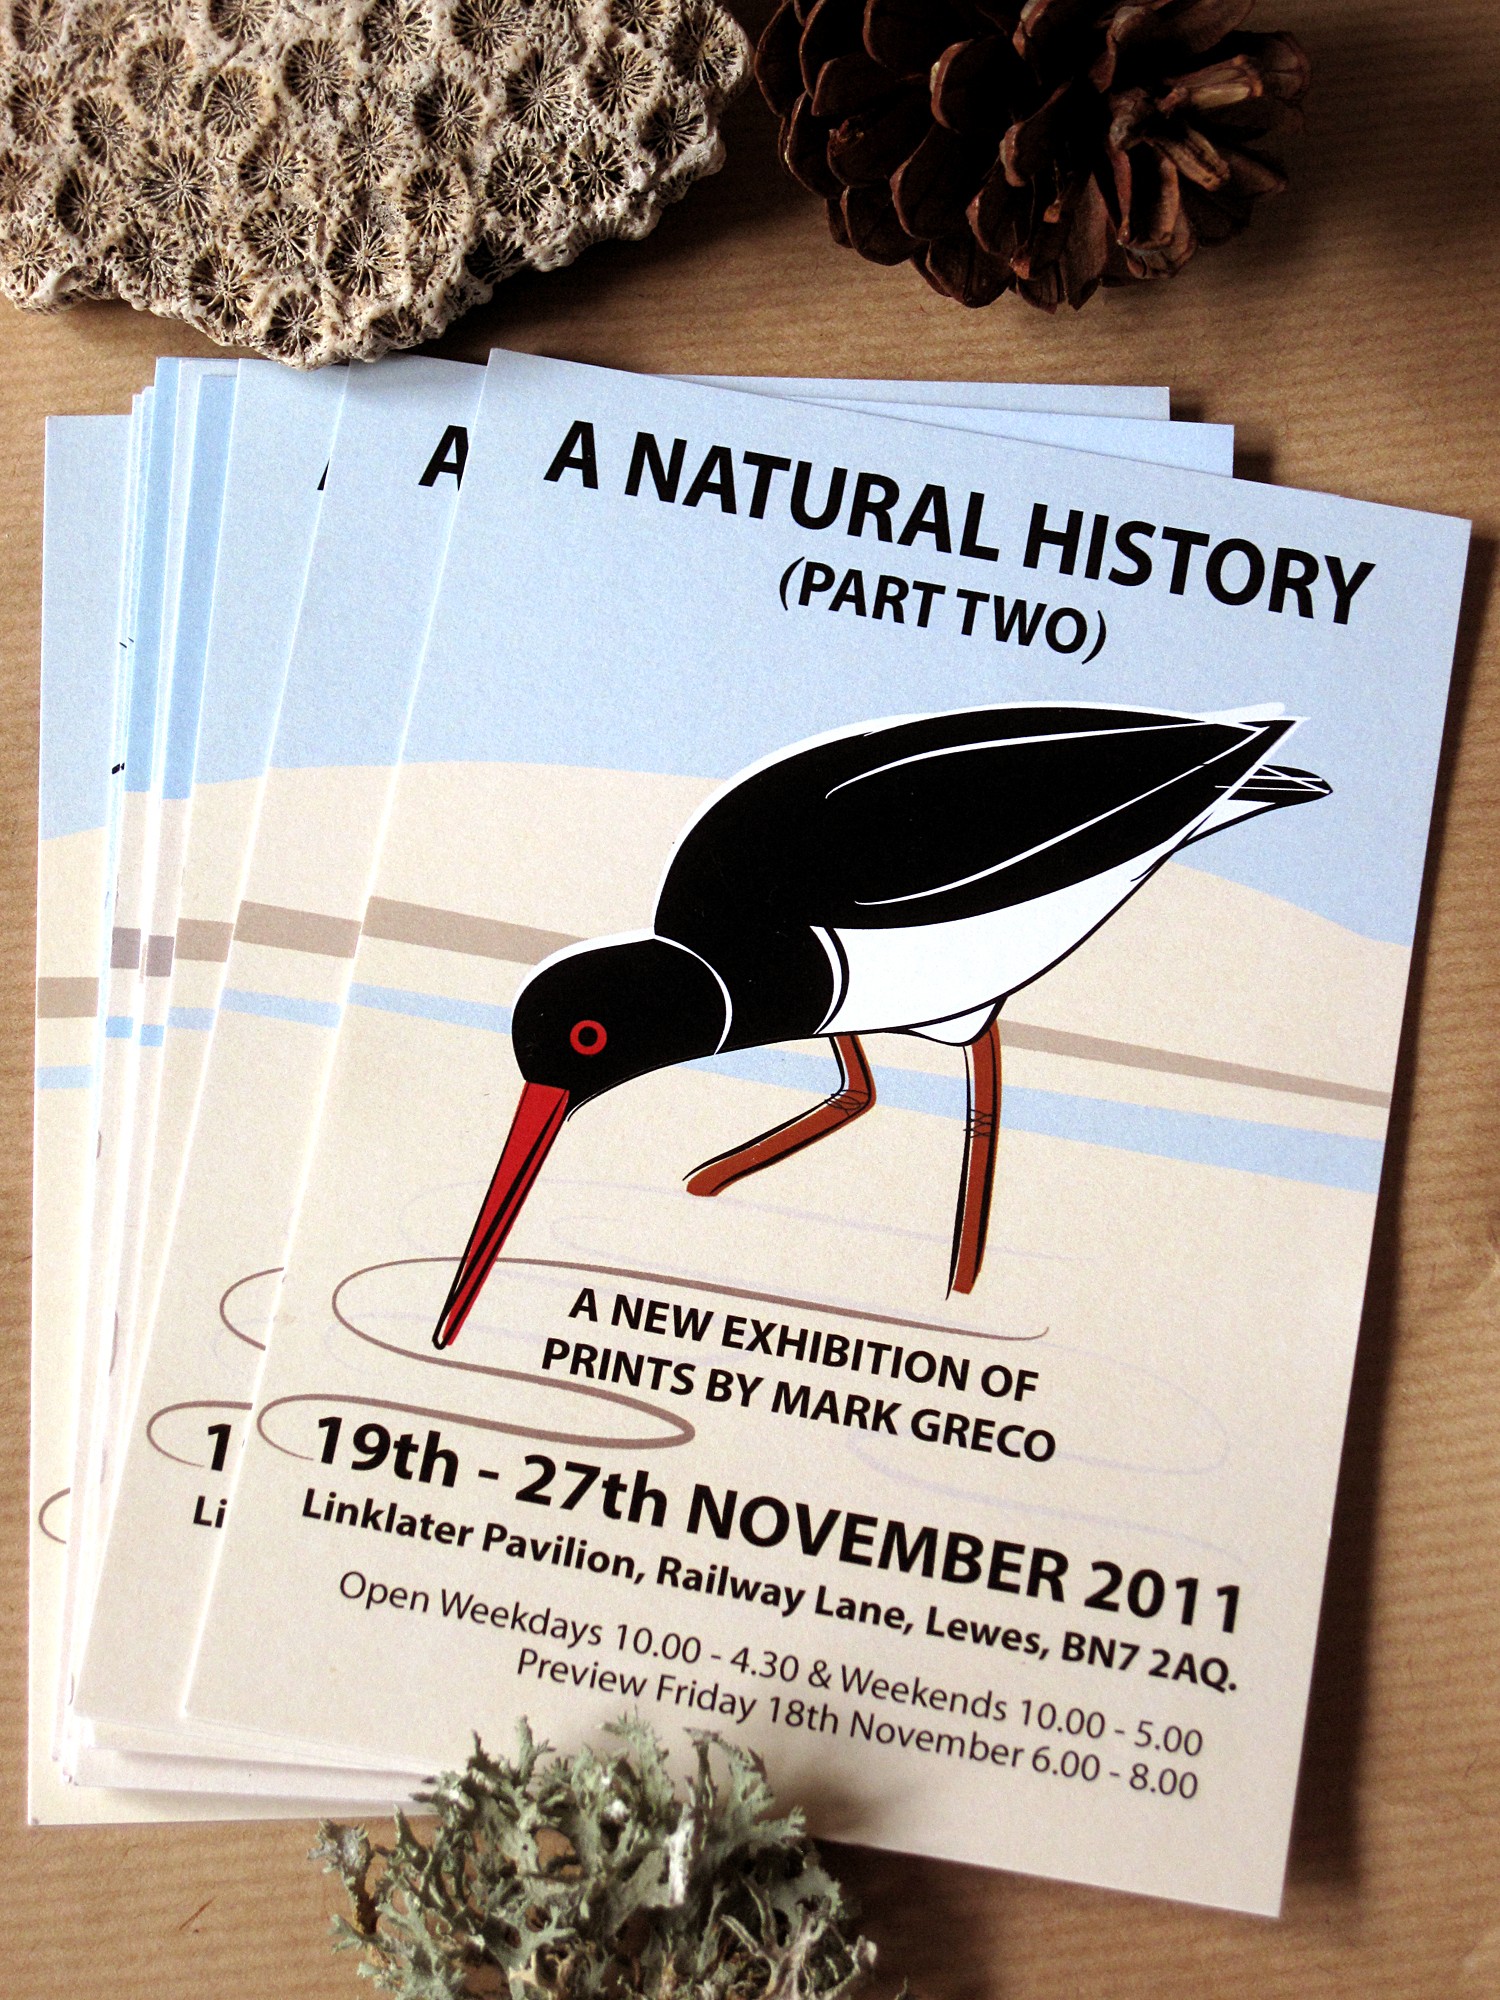 Exhibition Promotional Postcard ANHP2